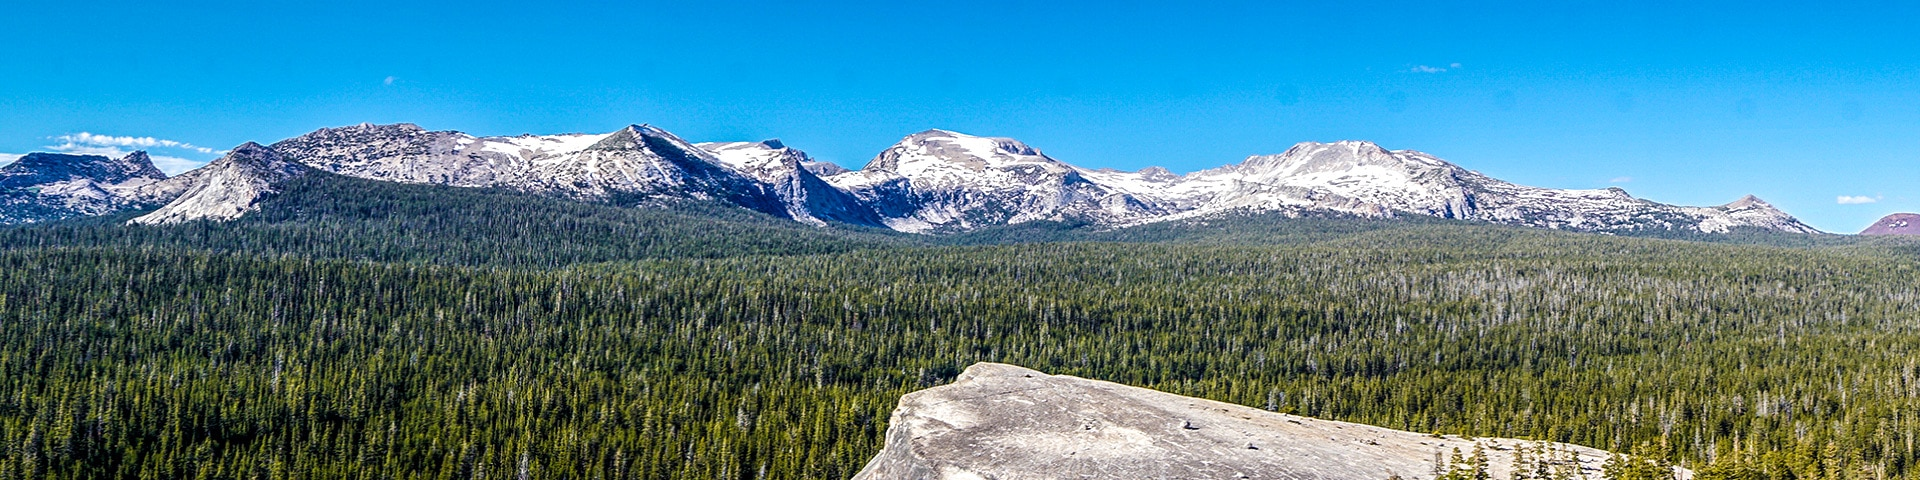 Panorama of the Lembert Dome hike in Yosemite National Park